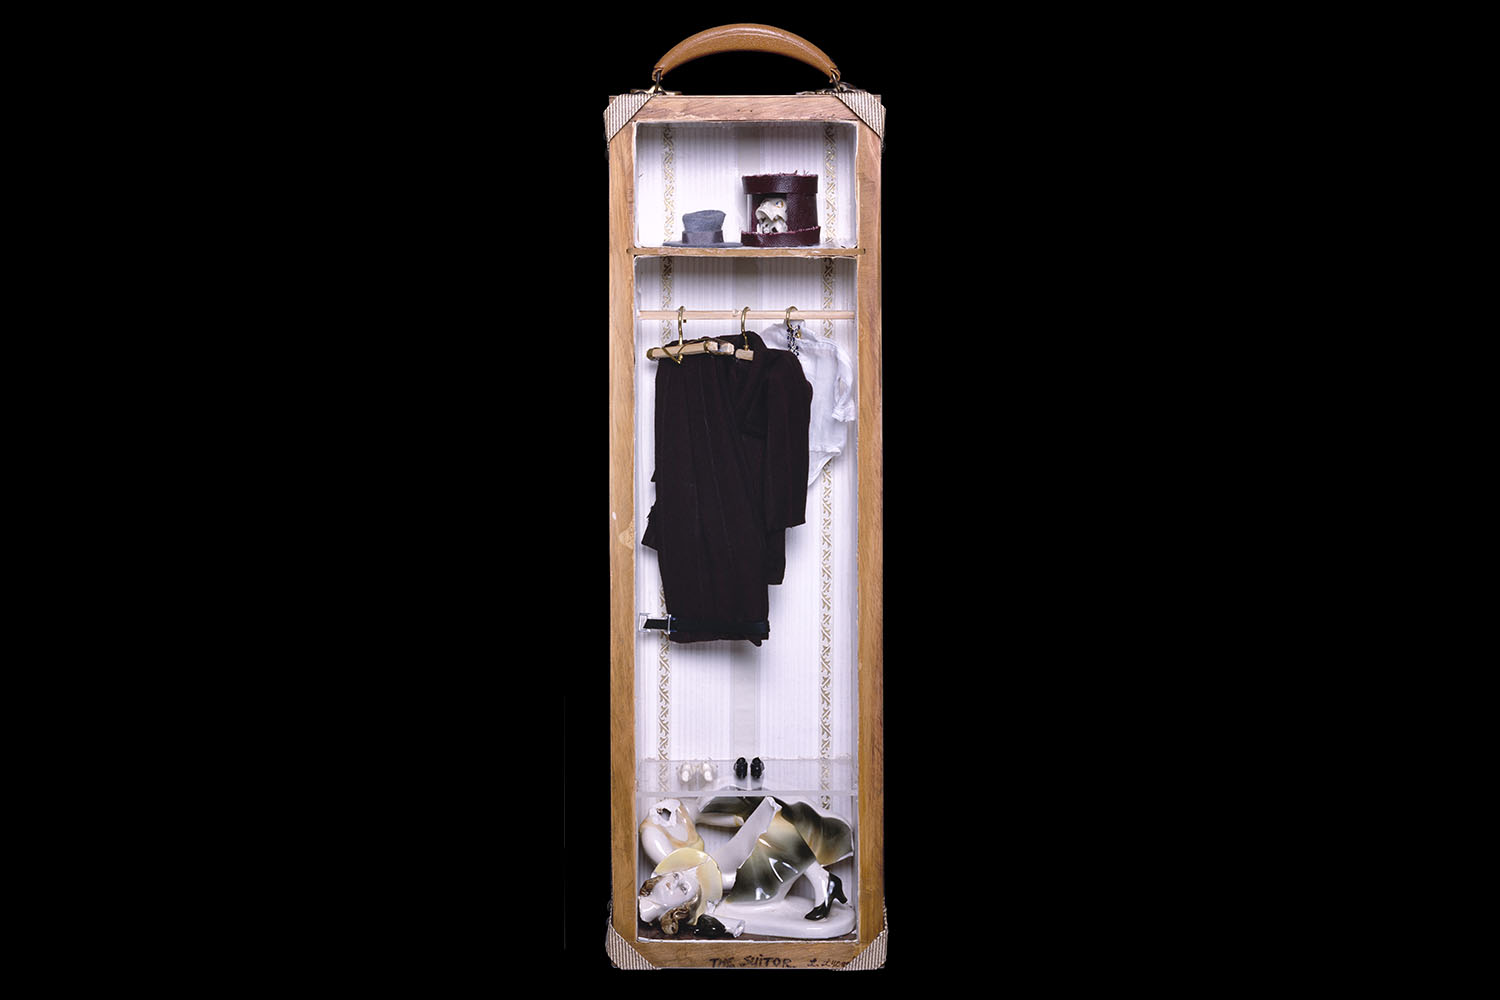 Narrow open half of a suitcase that resembles a wardrobe, inside containing a broken statue of a woman, clothes hanging, and a skull in a hat box